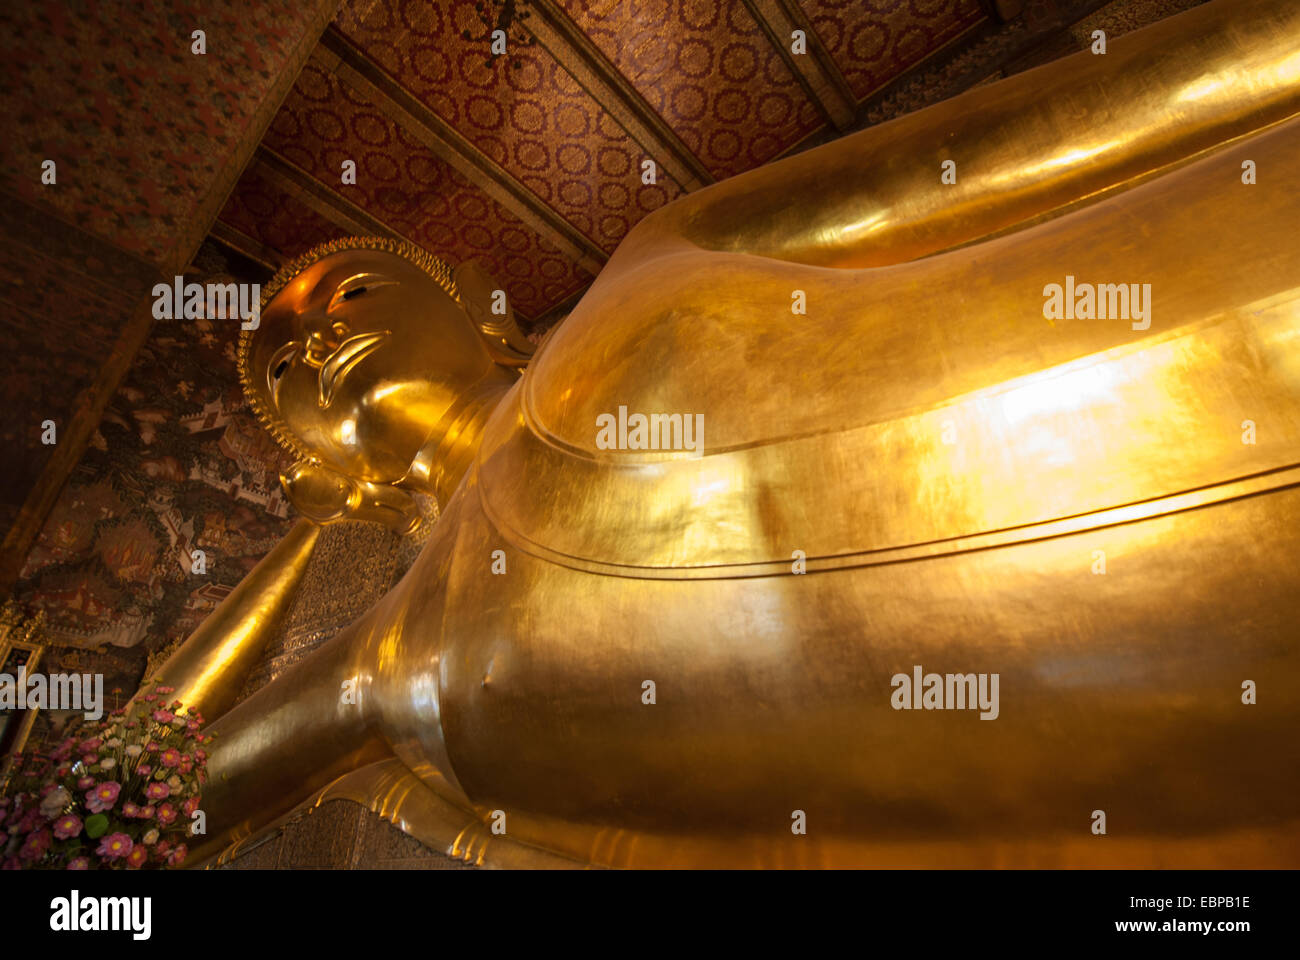 The reclining buddha is one of the largest in Thailand and is situated in Wat Pho in Bangkok, Thailand - Stock Image